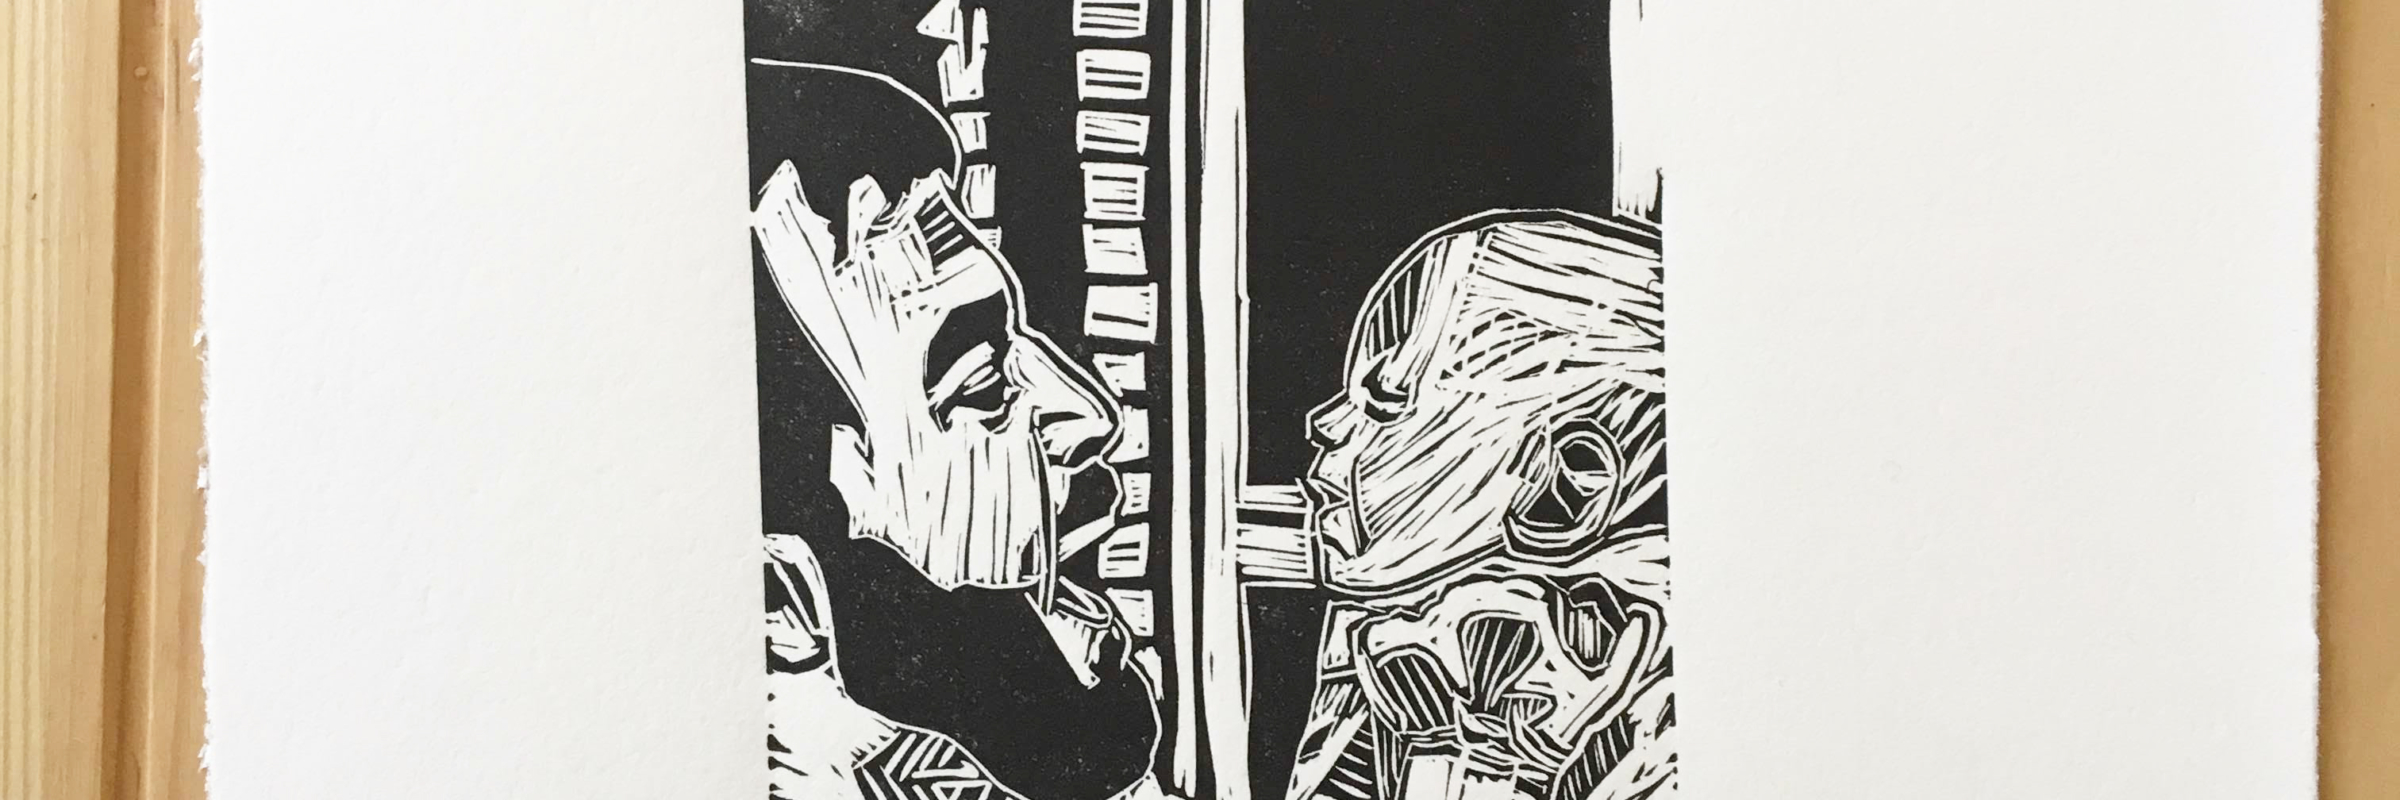 father and daughter original linocut relief print black copyright of Mary Vasquez